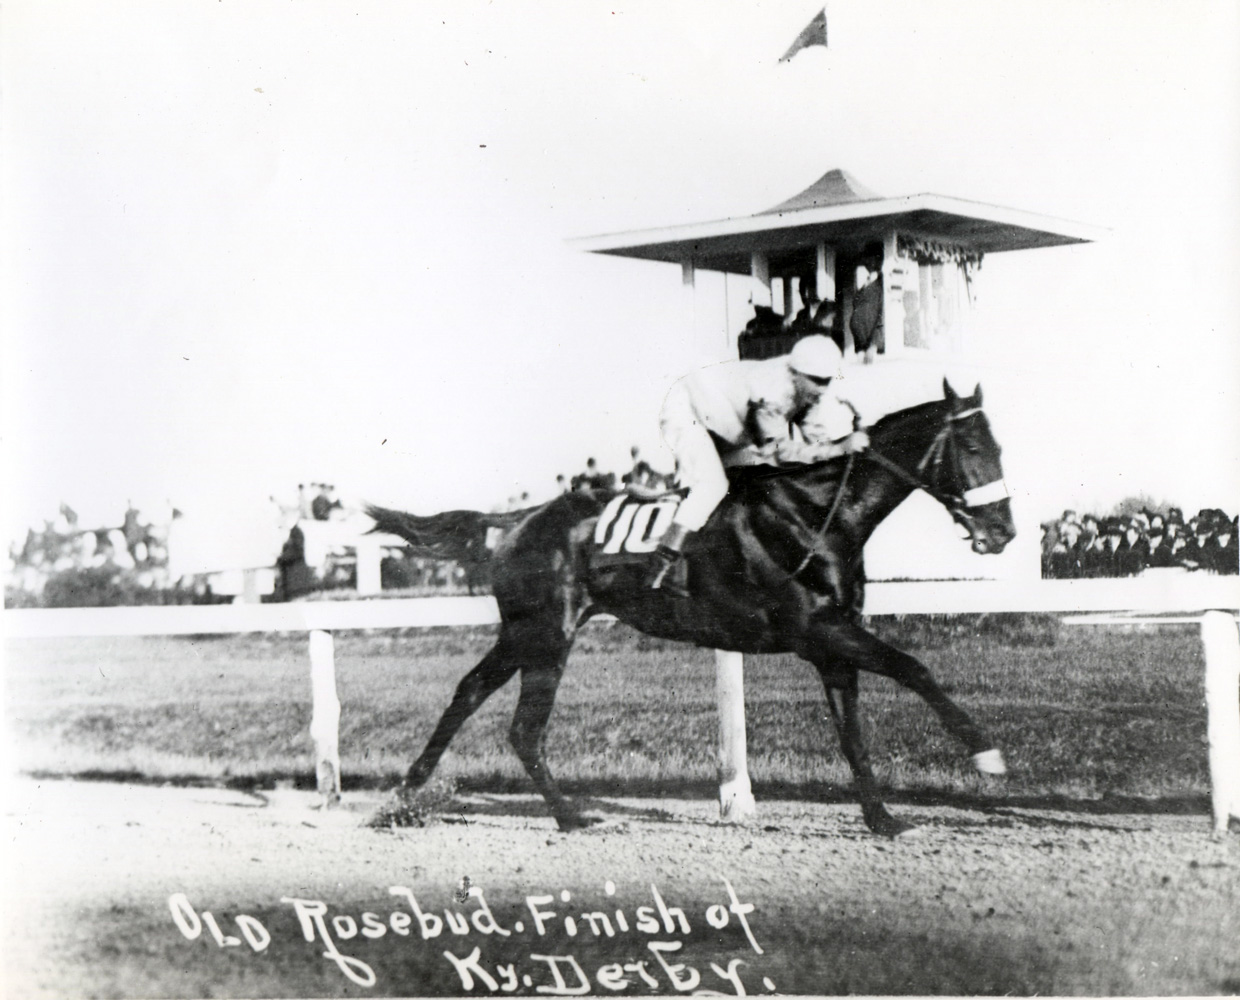 Old Rosebud (John McCabe up) winning the 1914 Kentucky Derby (Museum Collection)